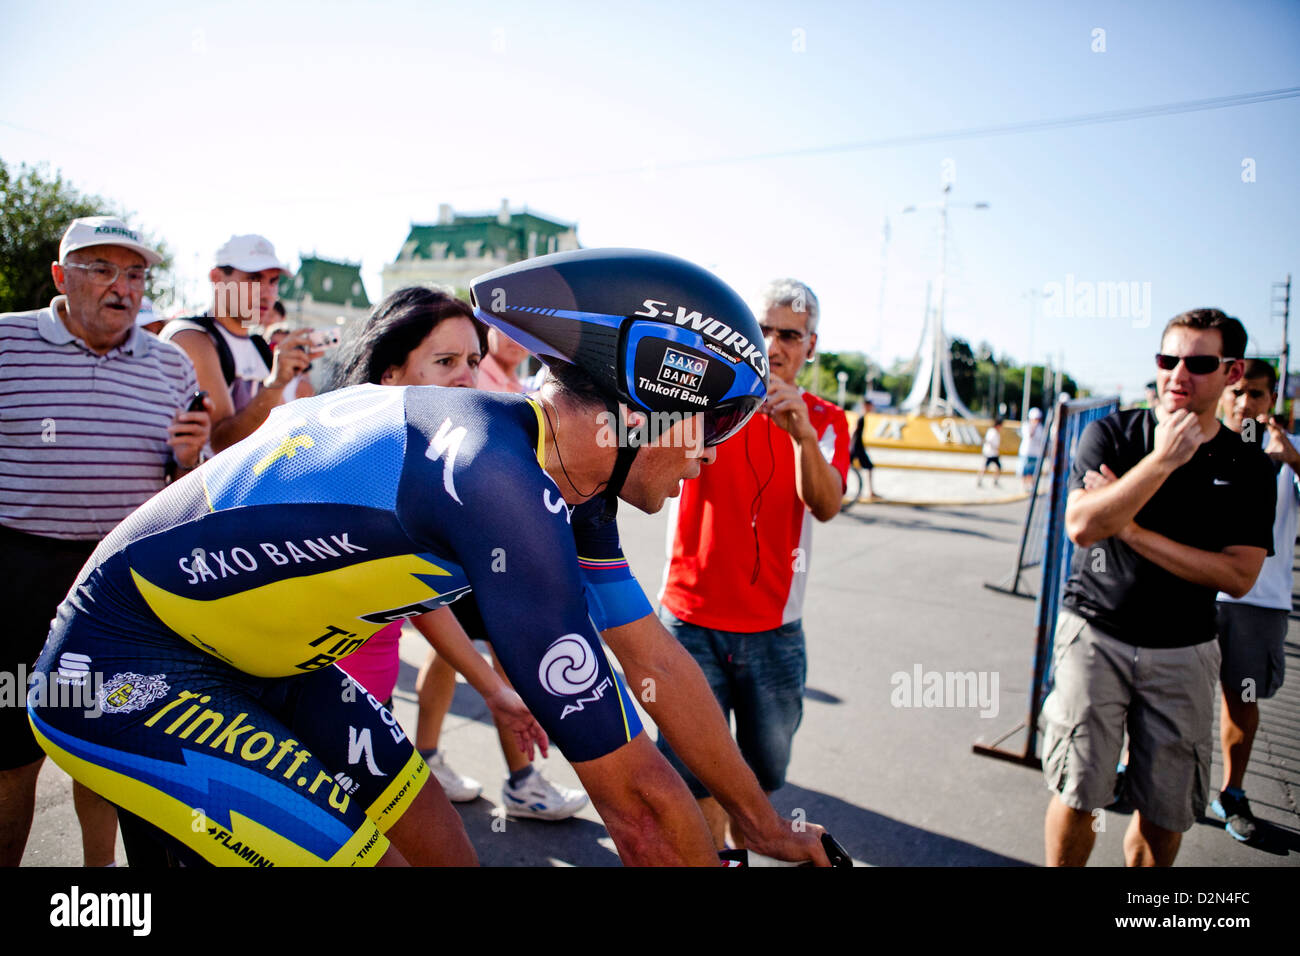 b797506ff Alberto Contador finished his time trial stage in Tour De San Luis 2013